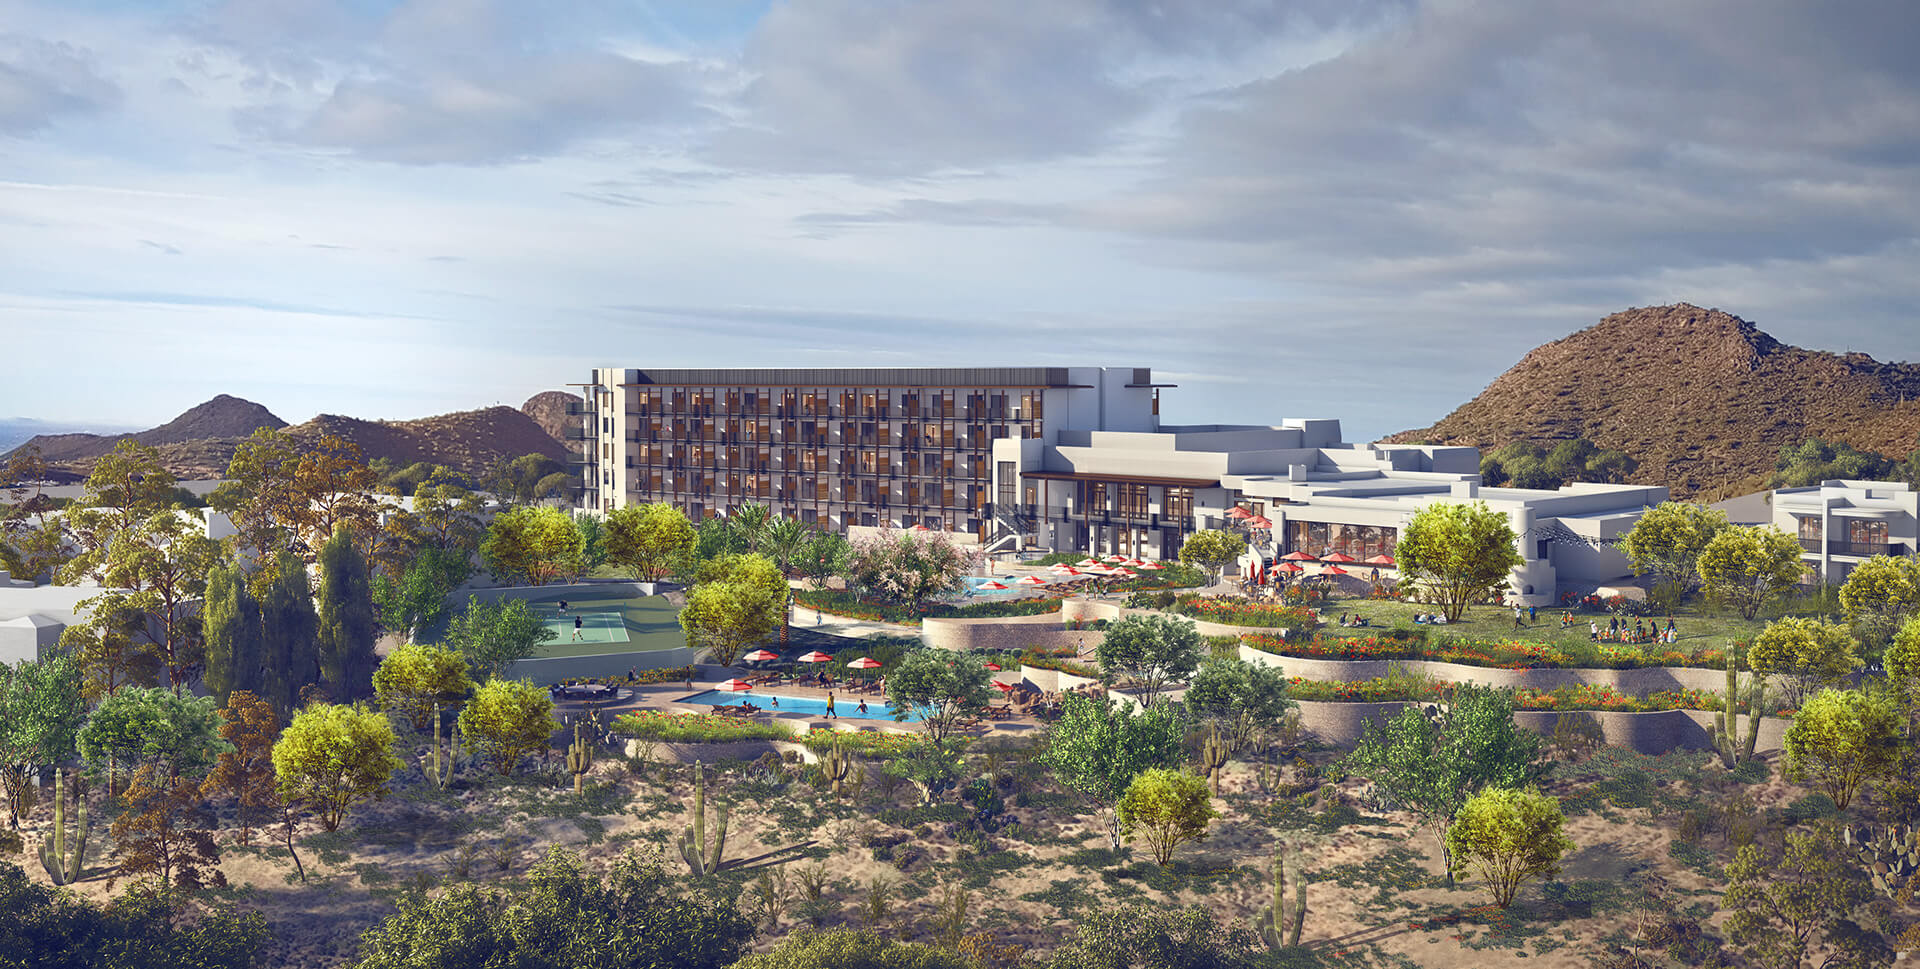 ADERO Scottsdale, an Autograph Collection Hotel